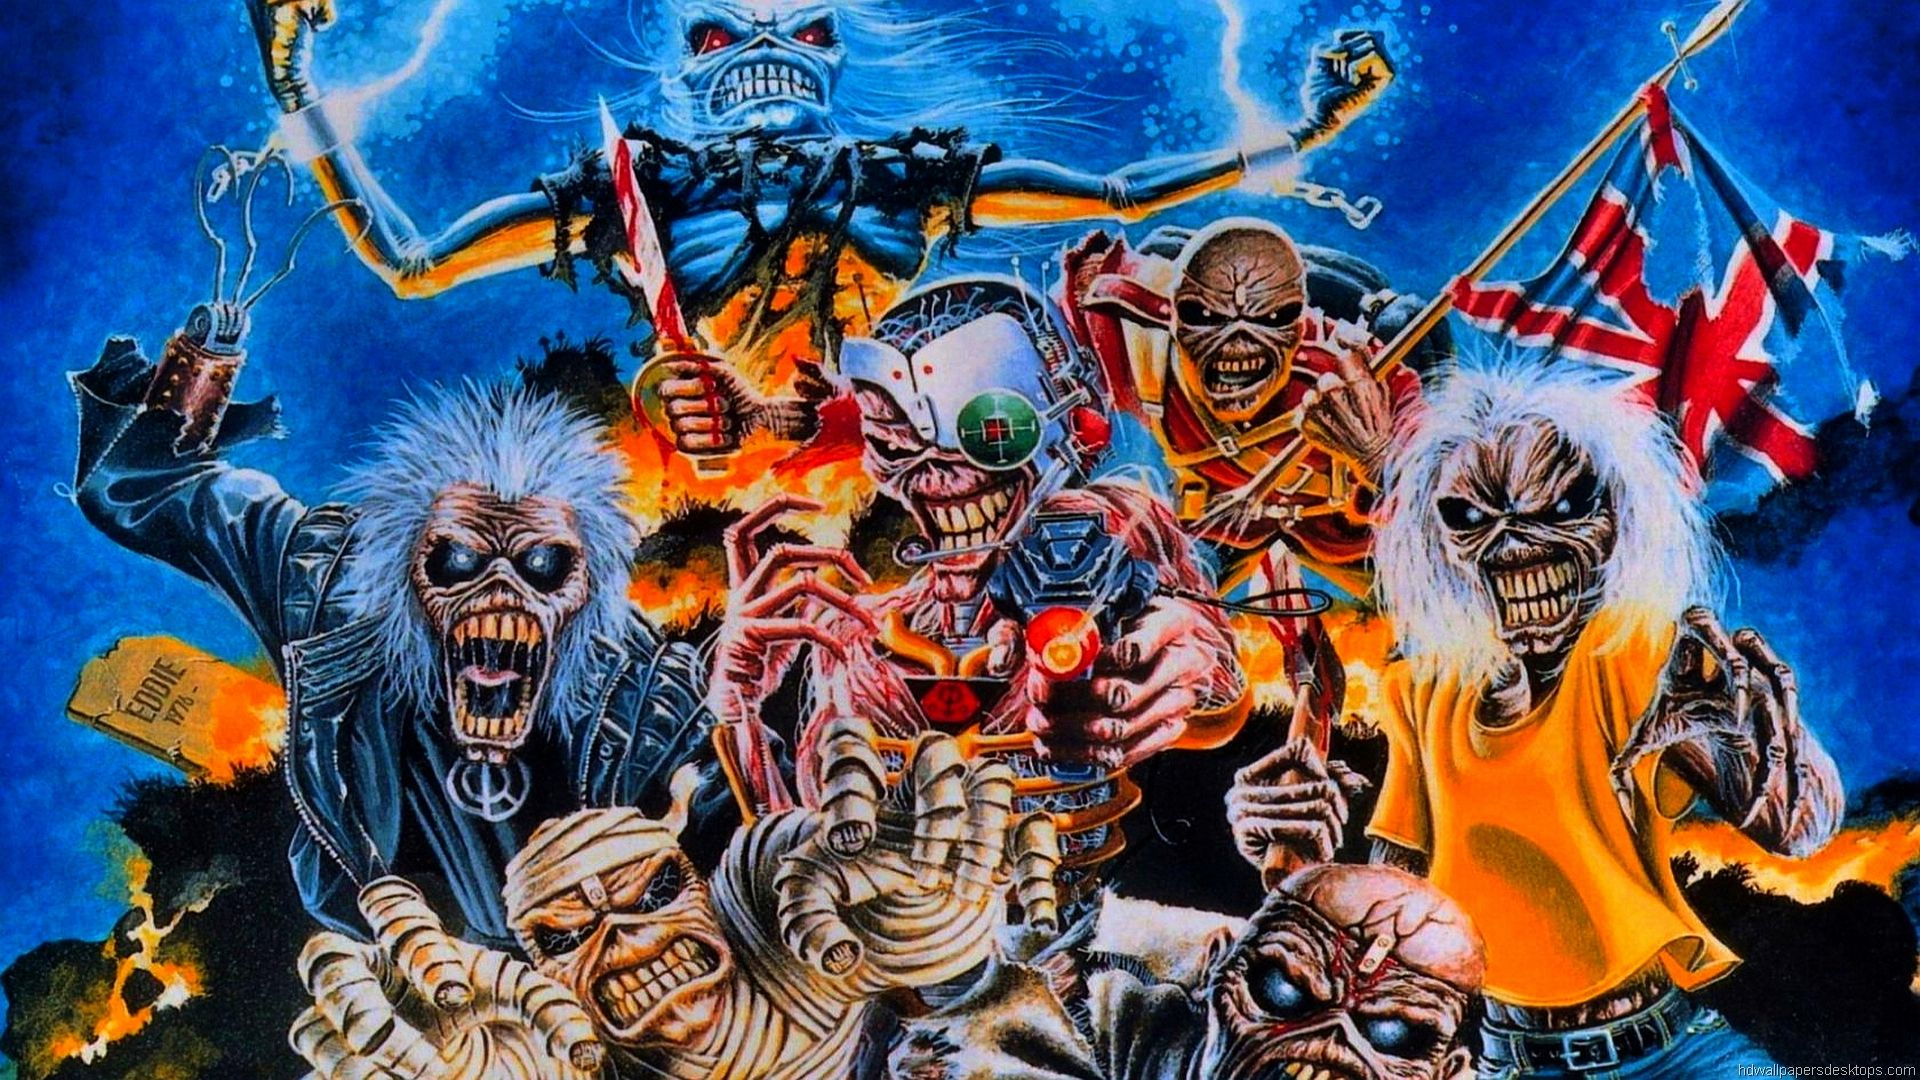 Nothing found for Iron Maiden Wallpaper Iron Maiden Hd Wallpaper Background  1920 | Iron maiden, Grupos de rock, Heavy metal